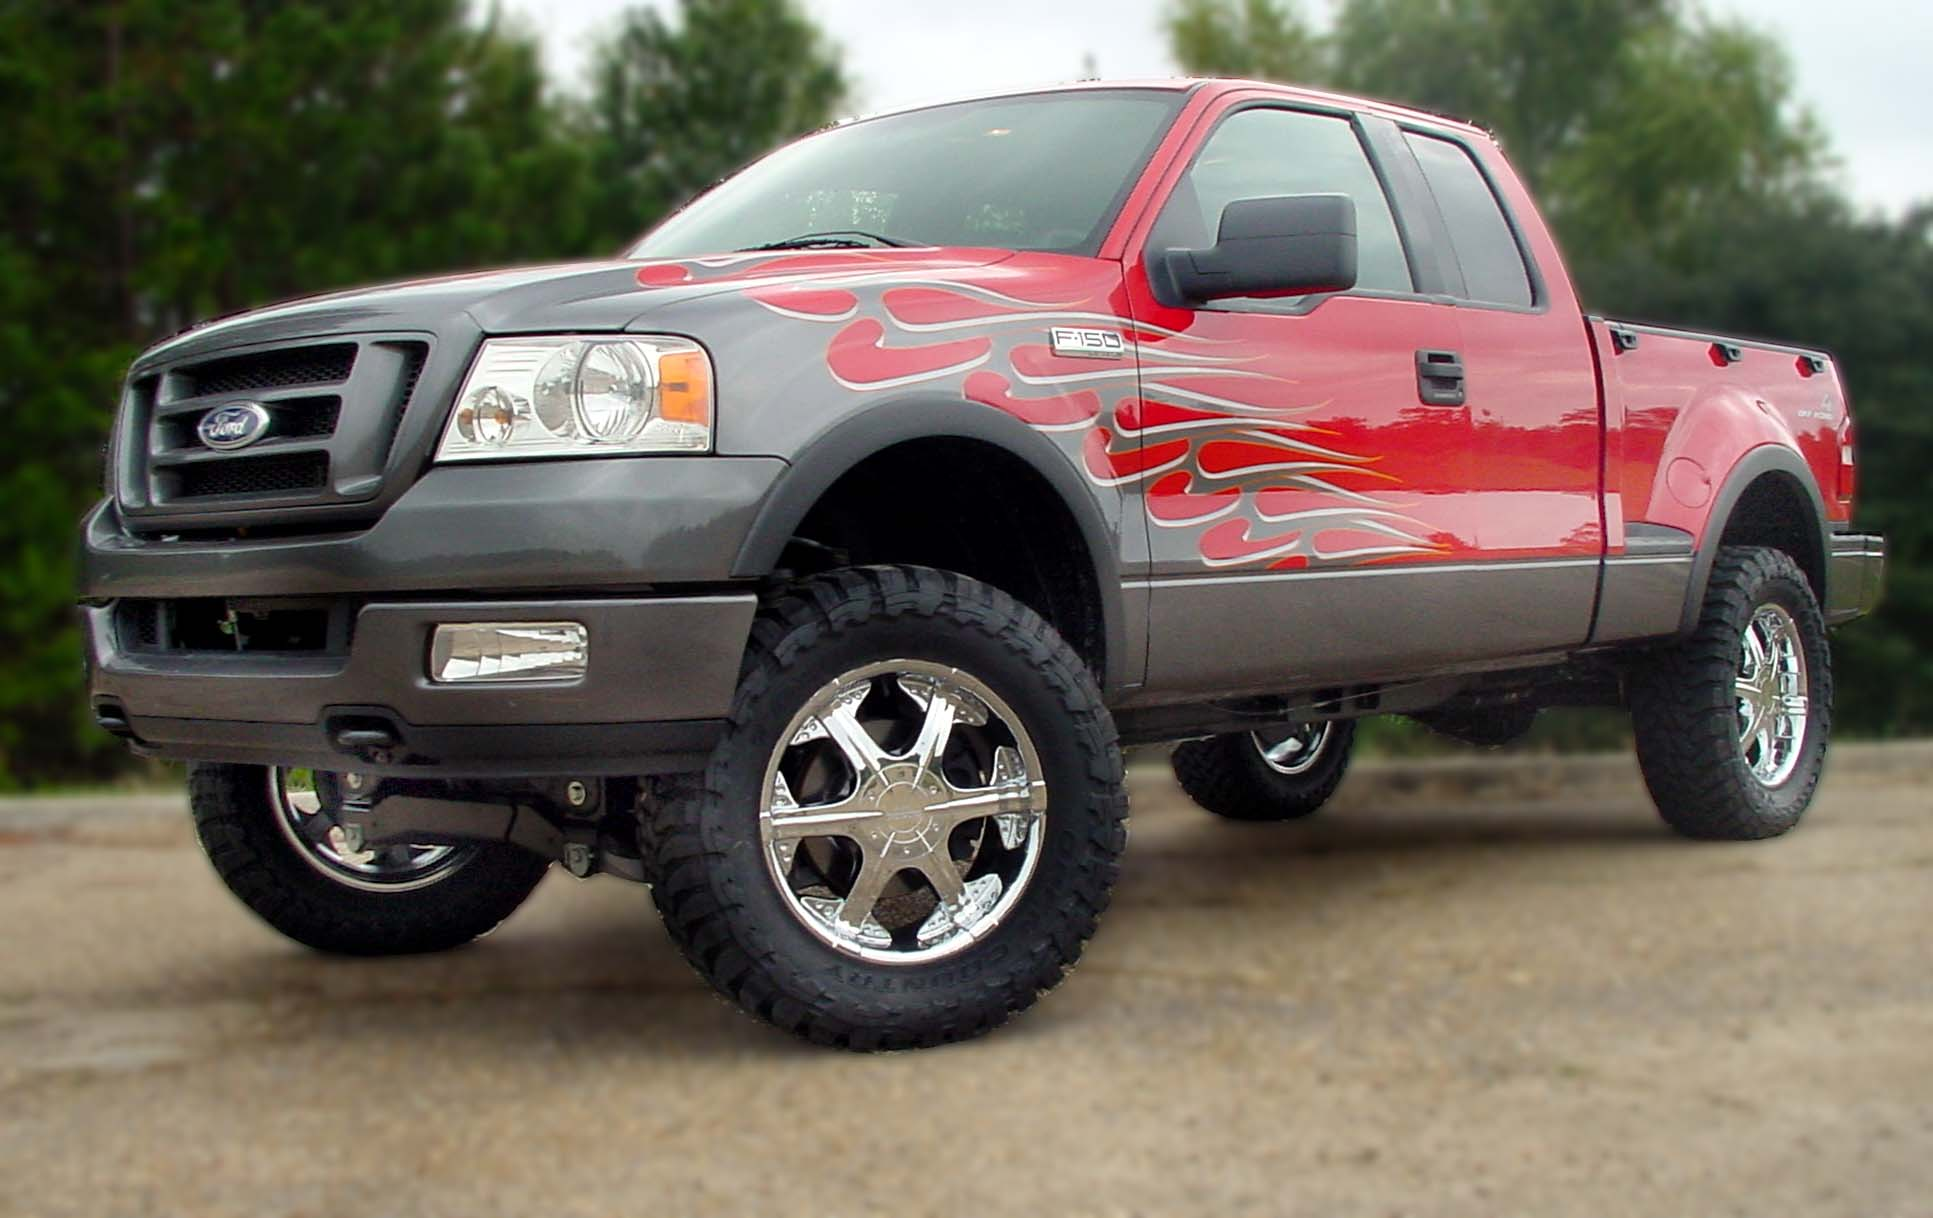 Ford F150 Related Imagesstart 0 Weili Automotive Network 2004 F 150 Special Edition Custom 4x4